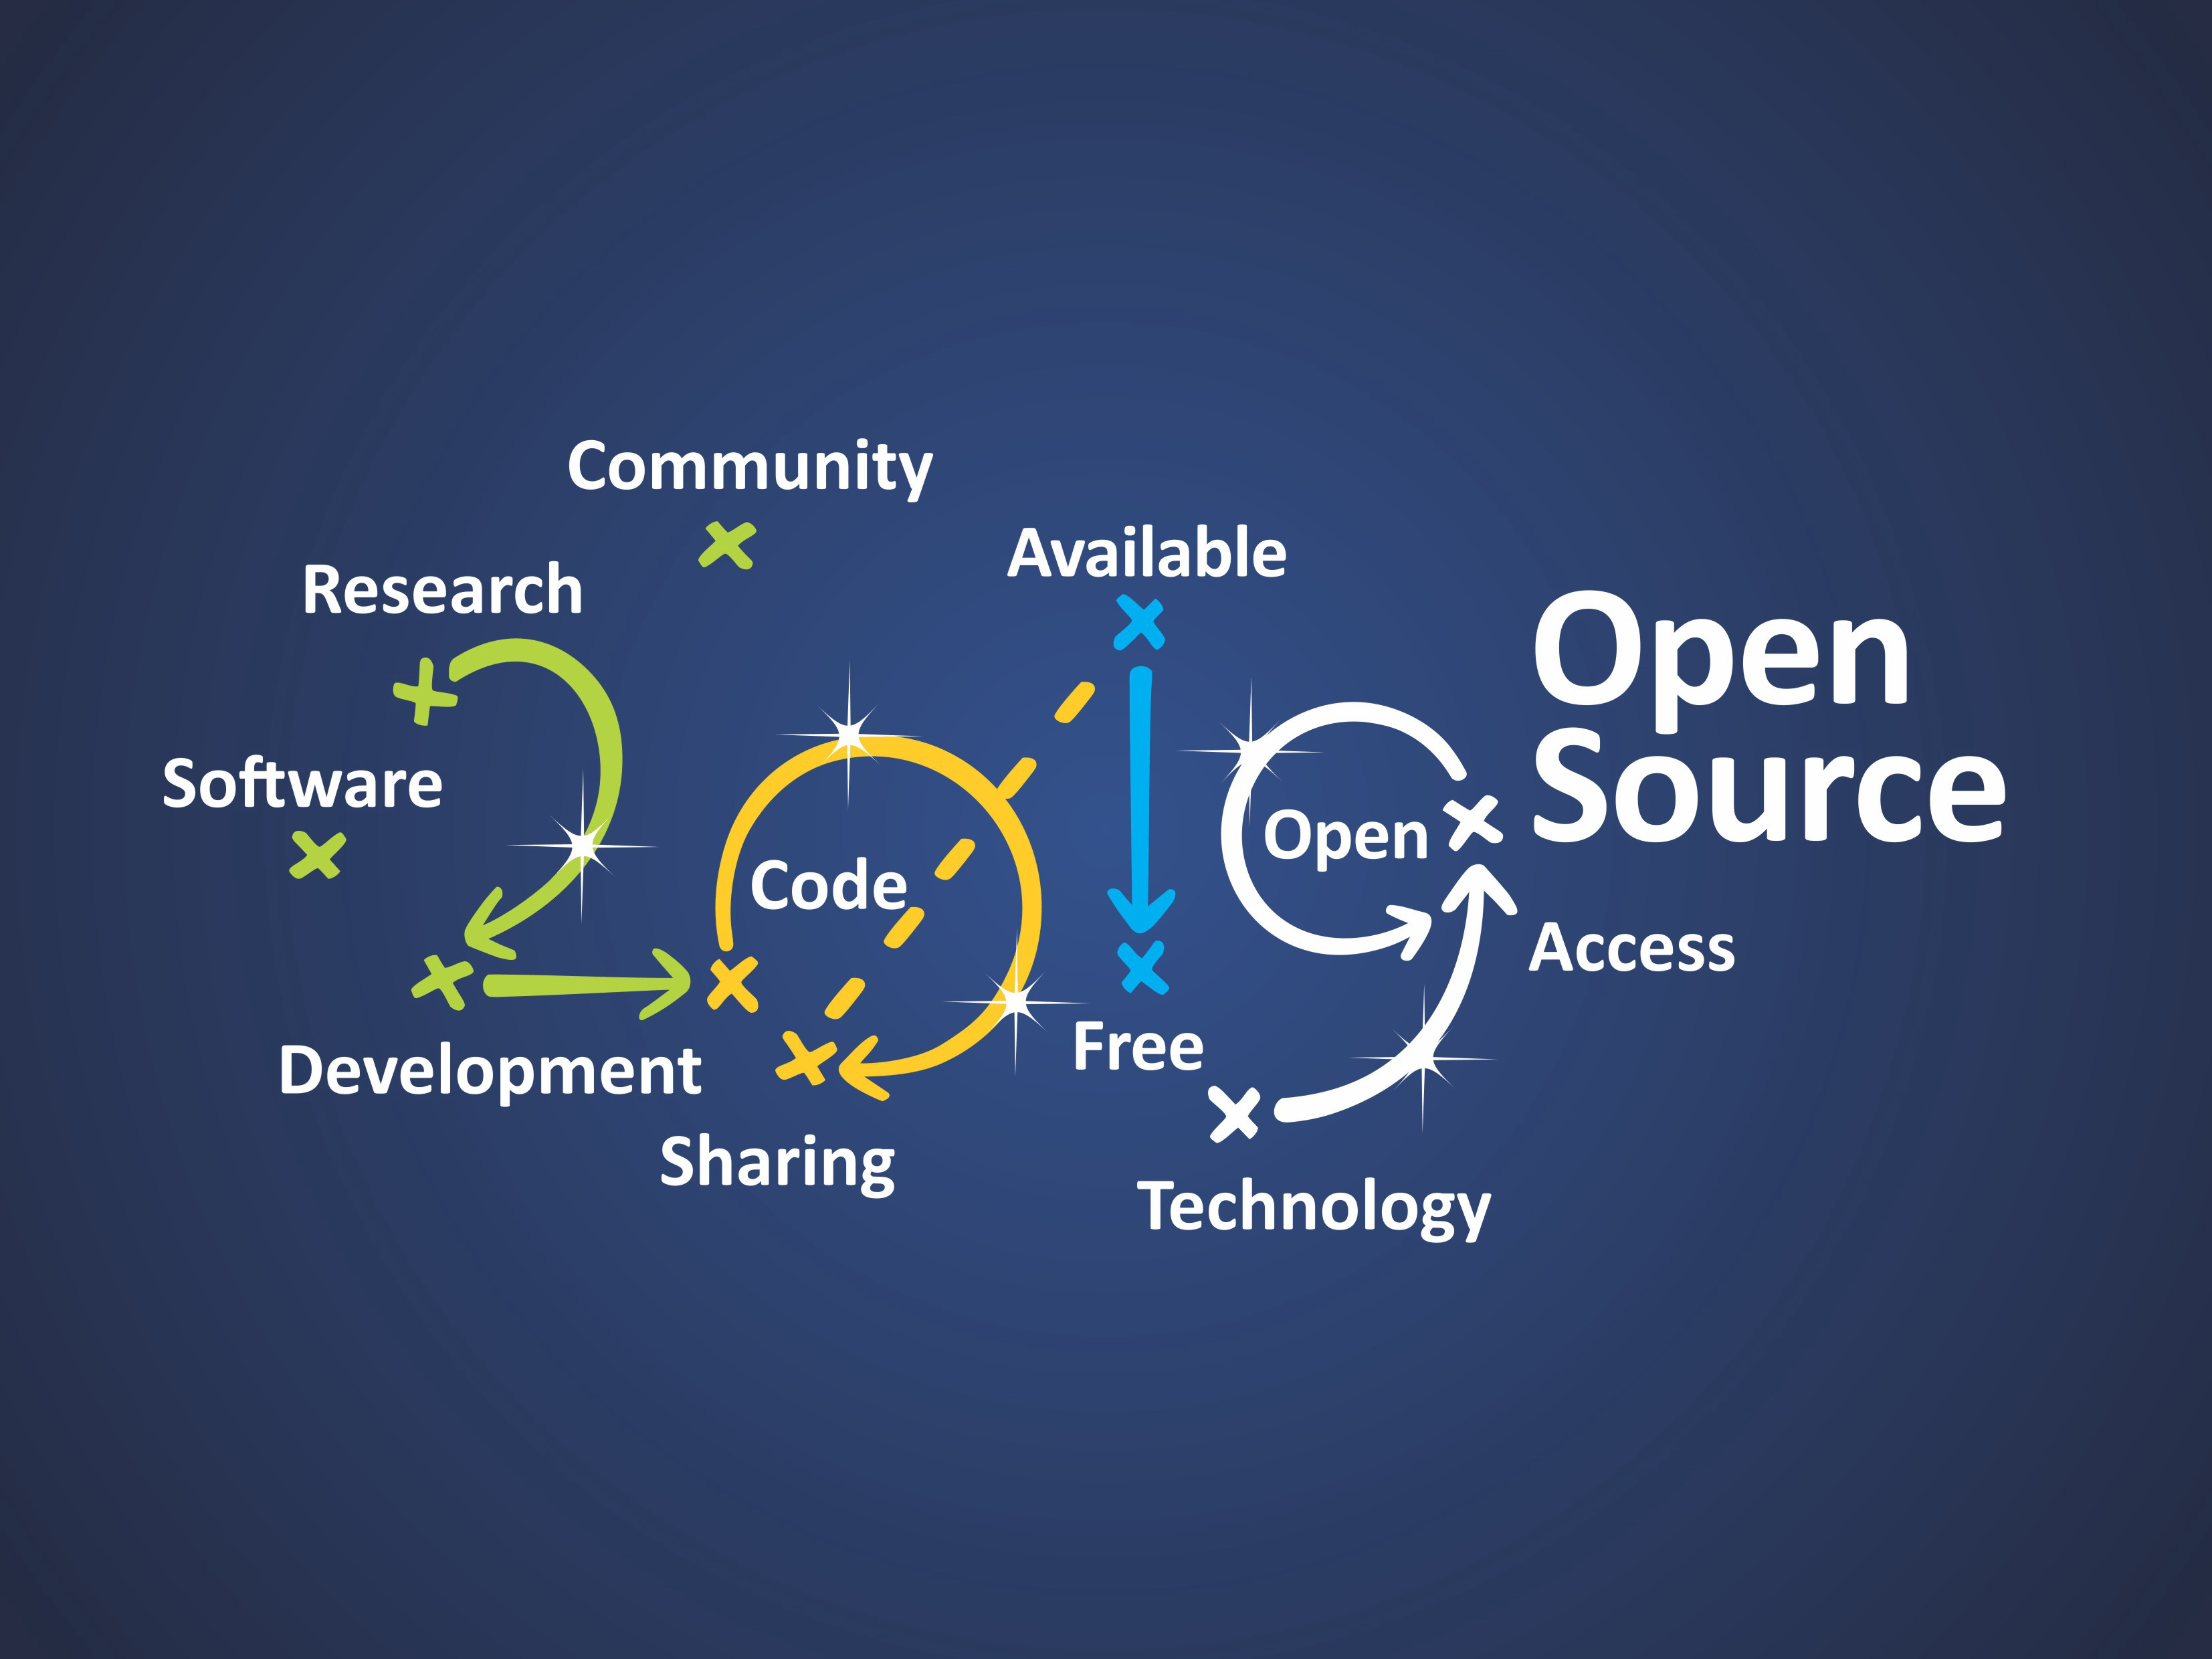 Open Source 2019 Software Research Community Available Open Access Free Sharing Technology Development Code